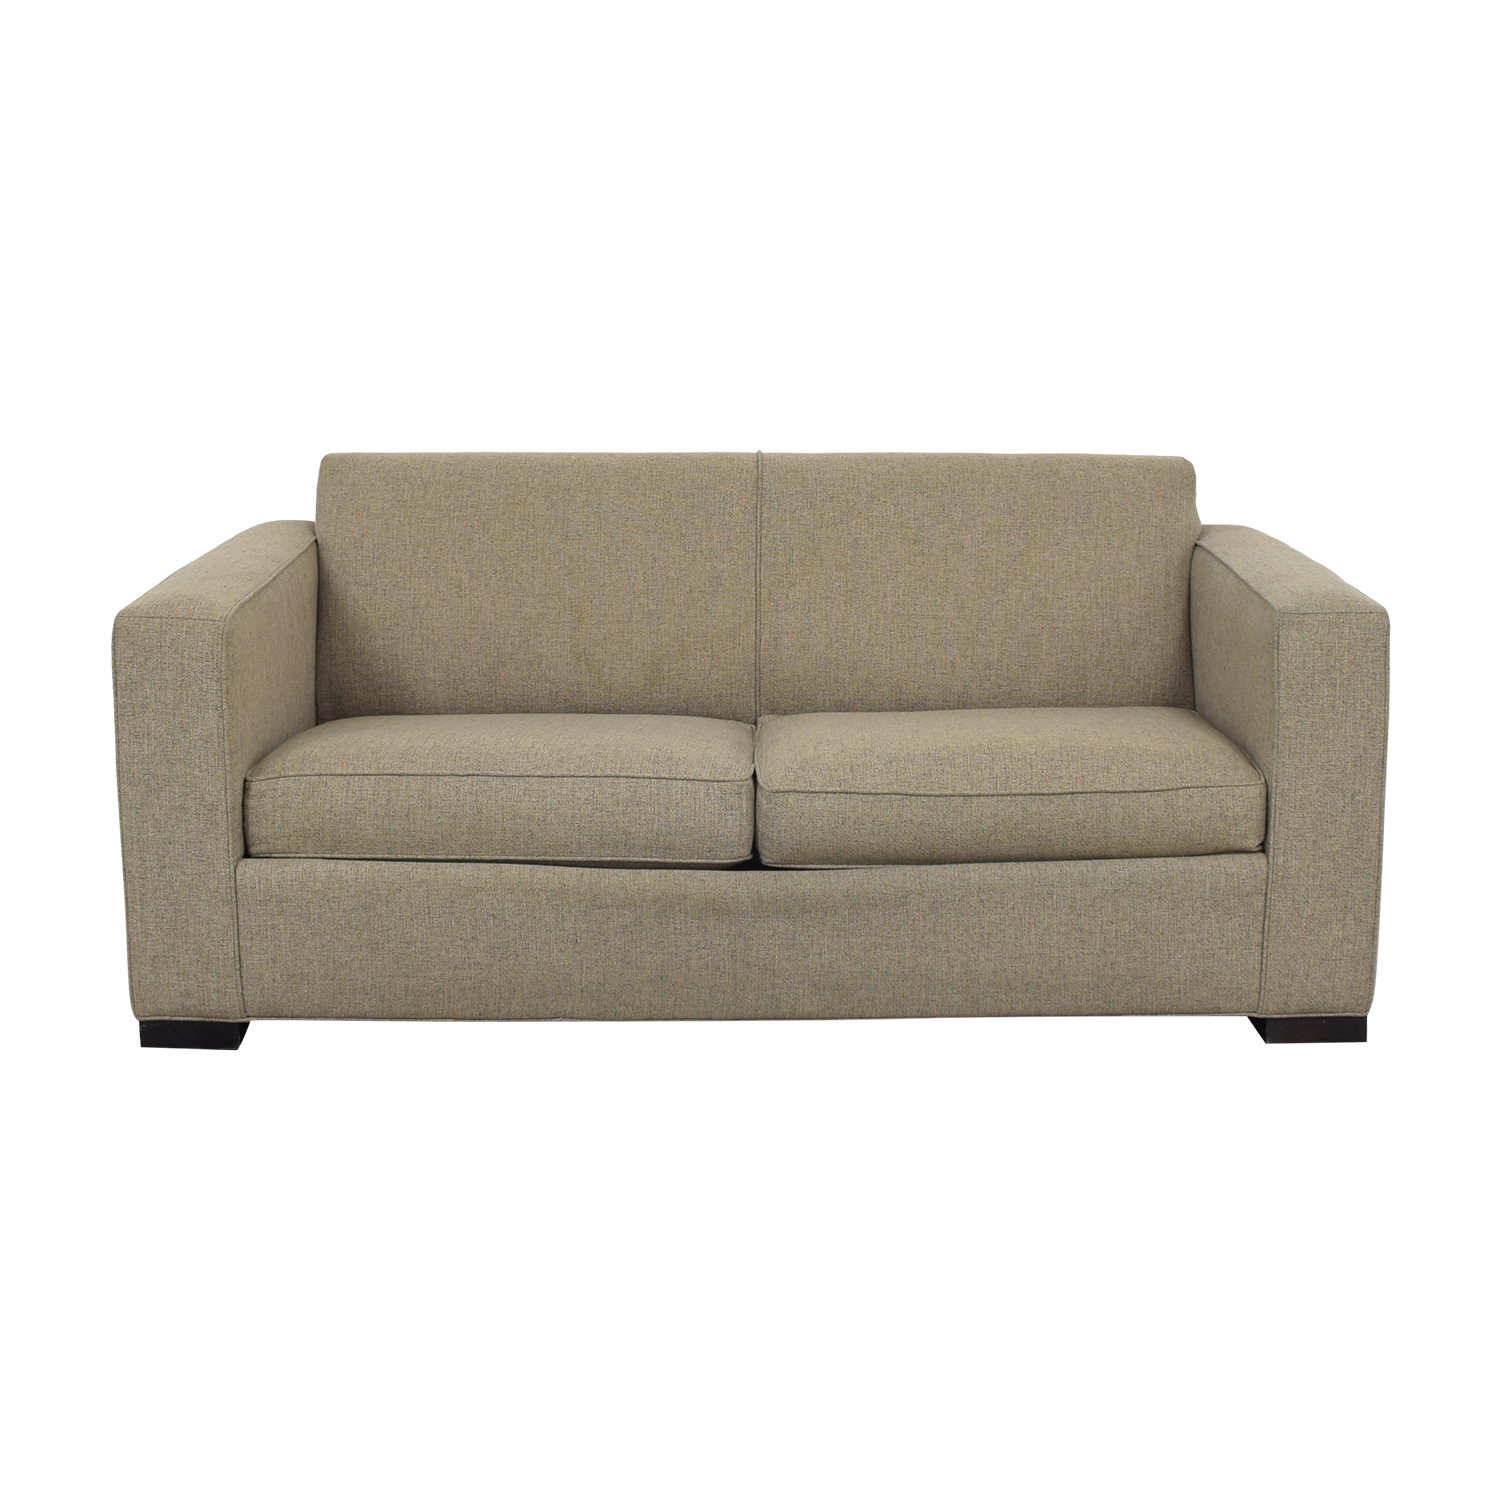 Room & Board Room & Board Levin Full Sleeper Sofa on sale